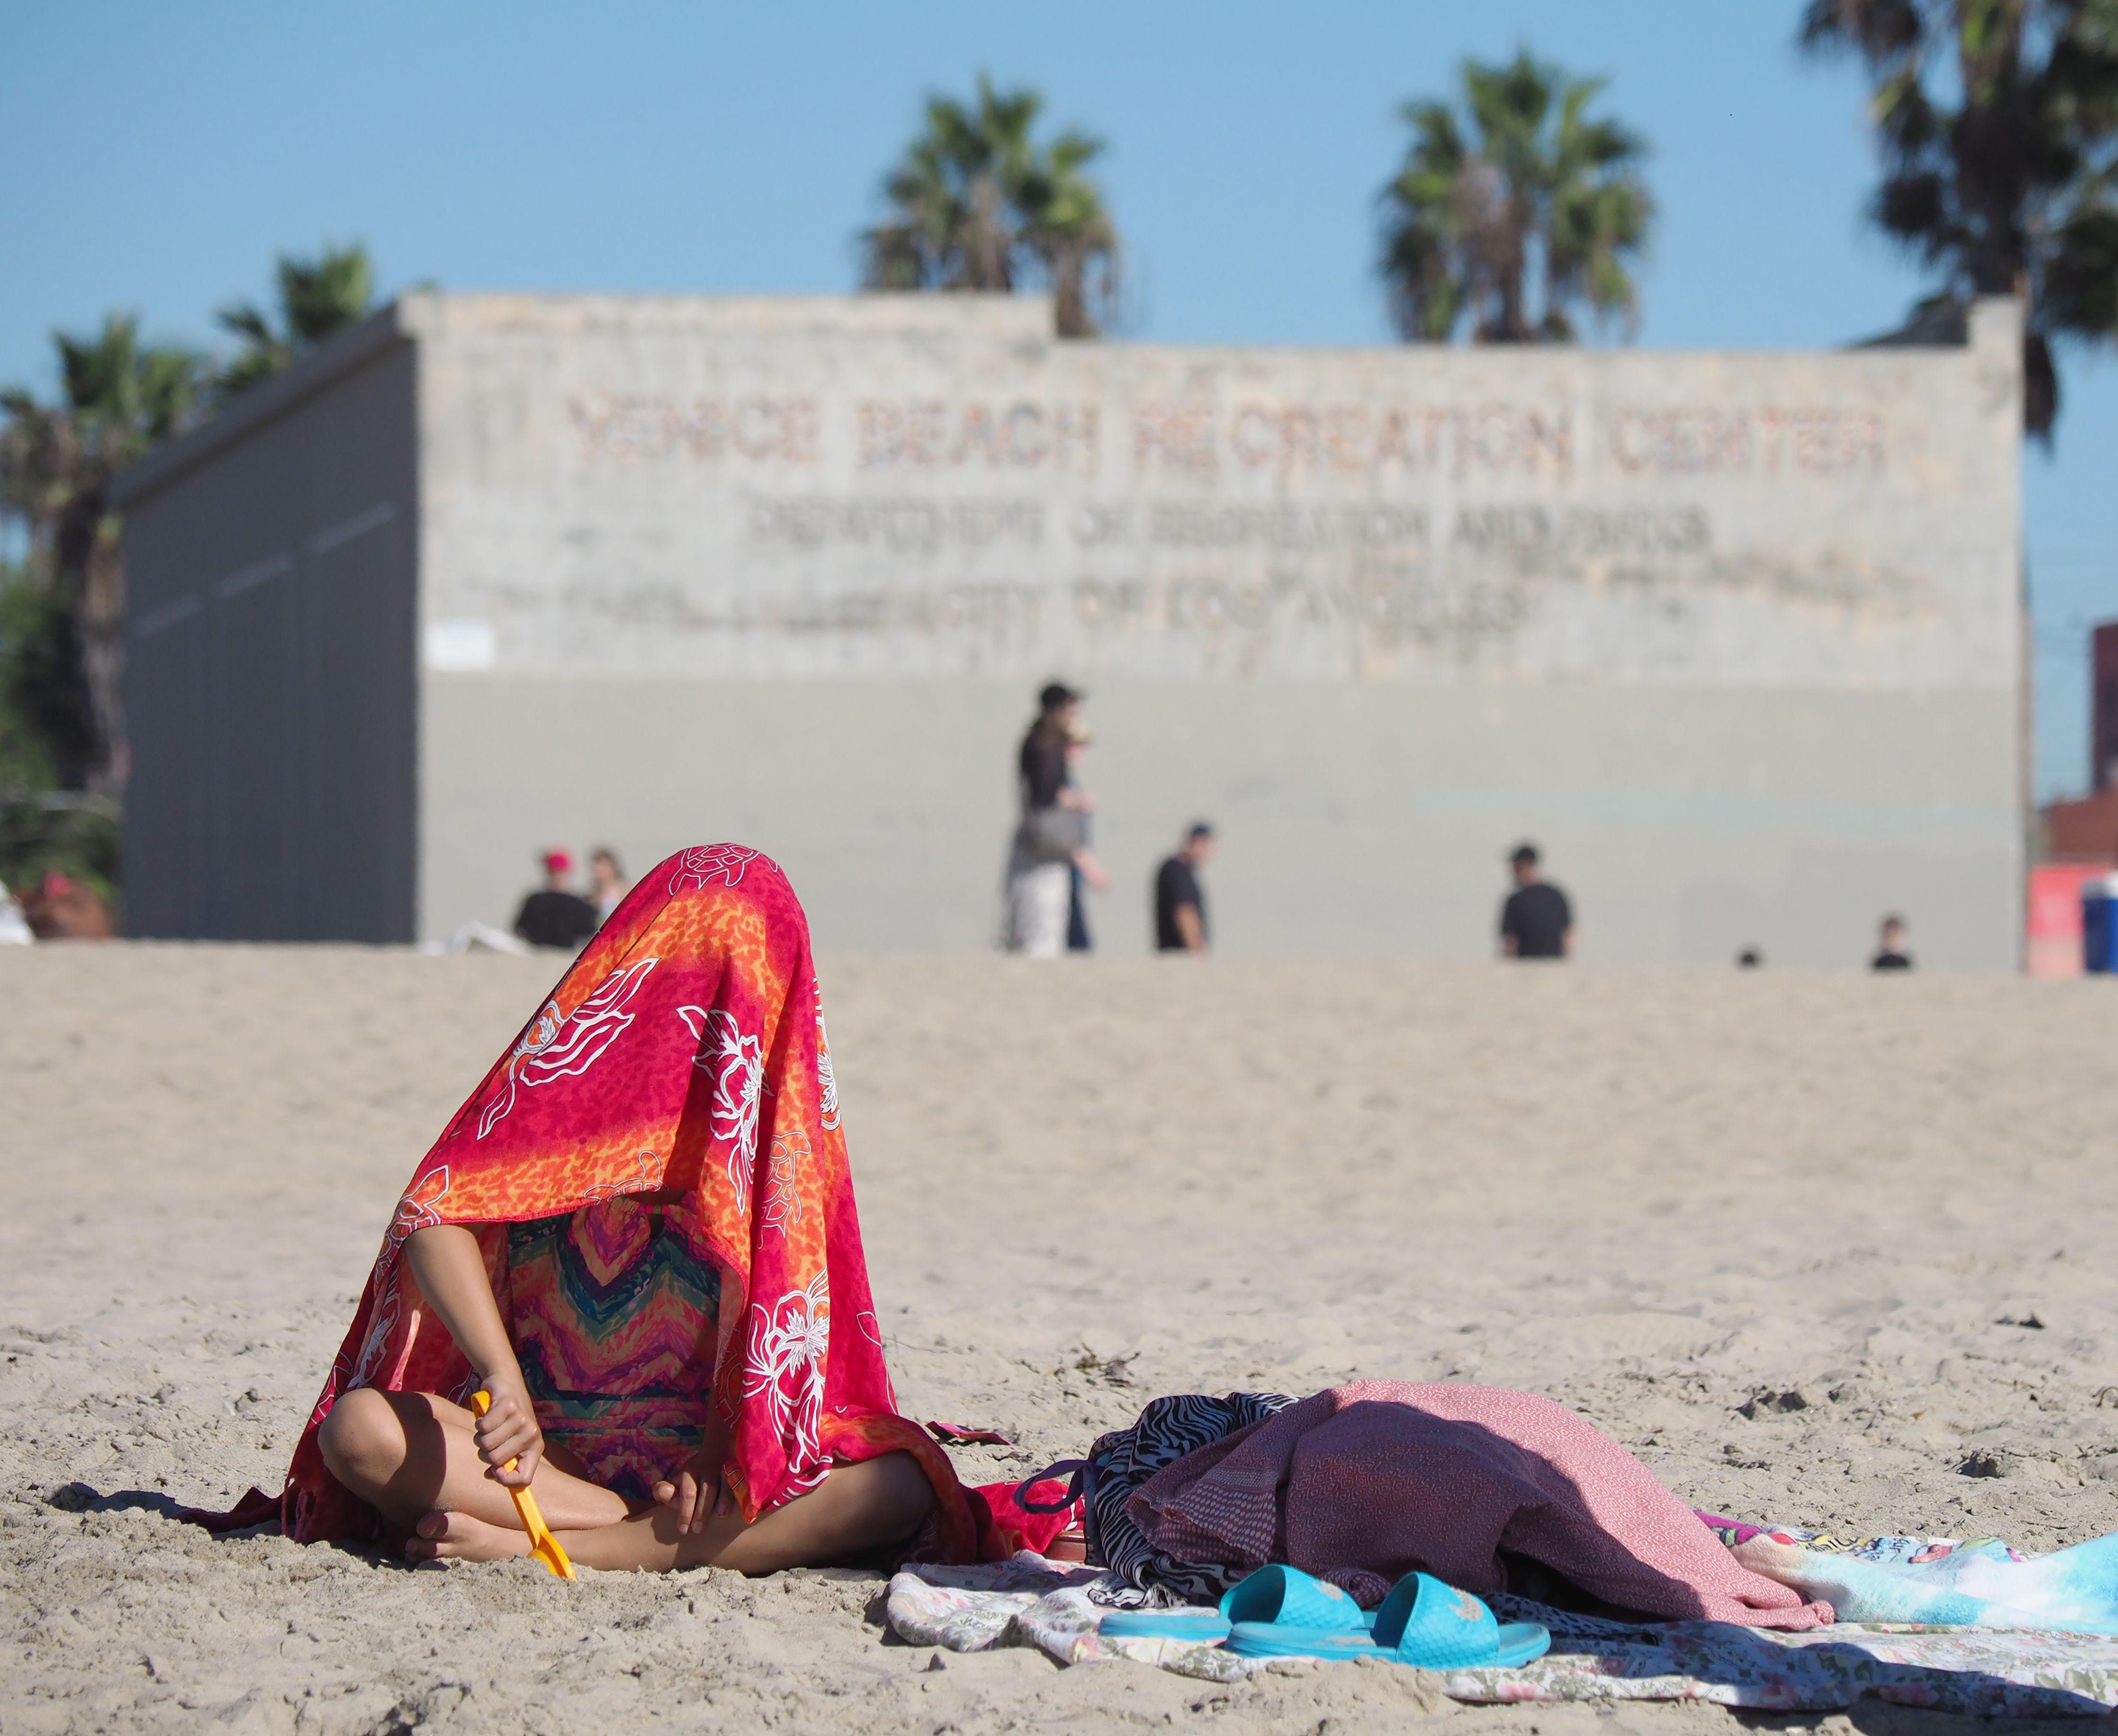 A young beach goer covers her head with a towel to stave off the heat.